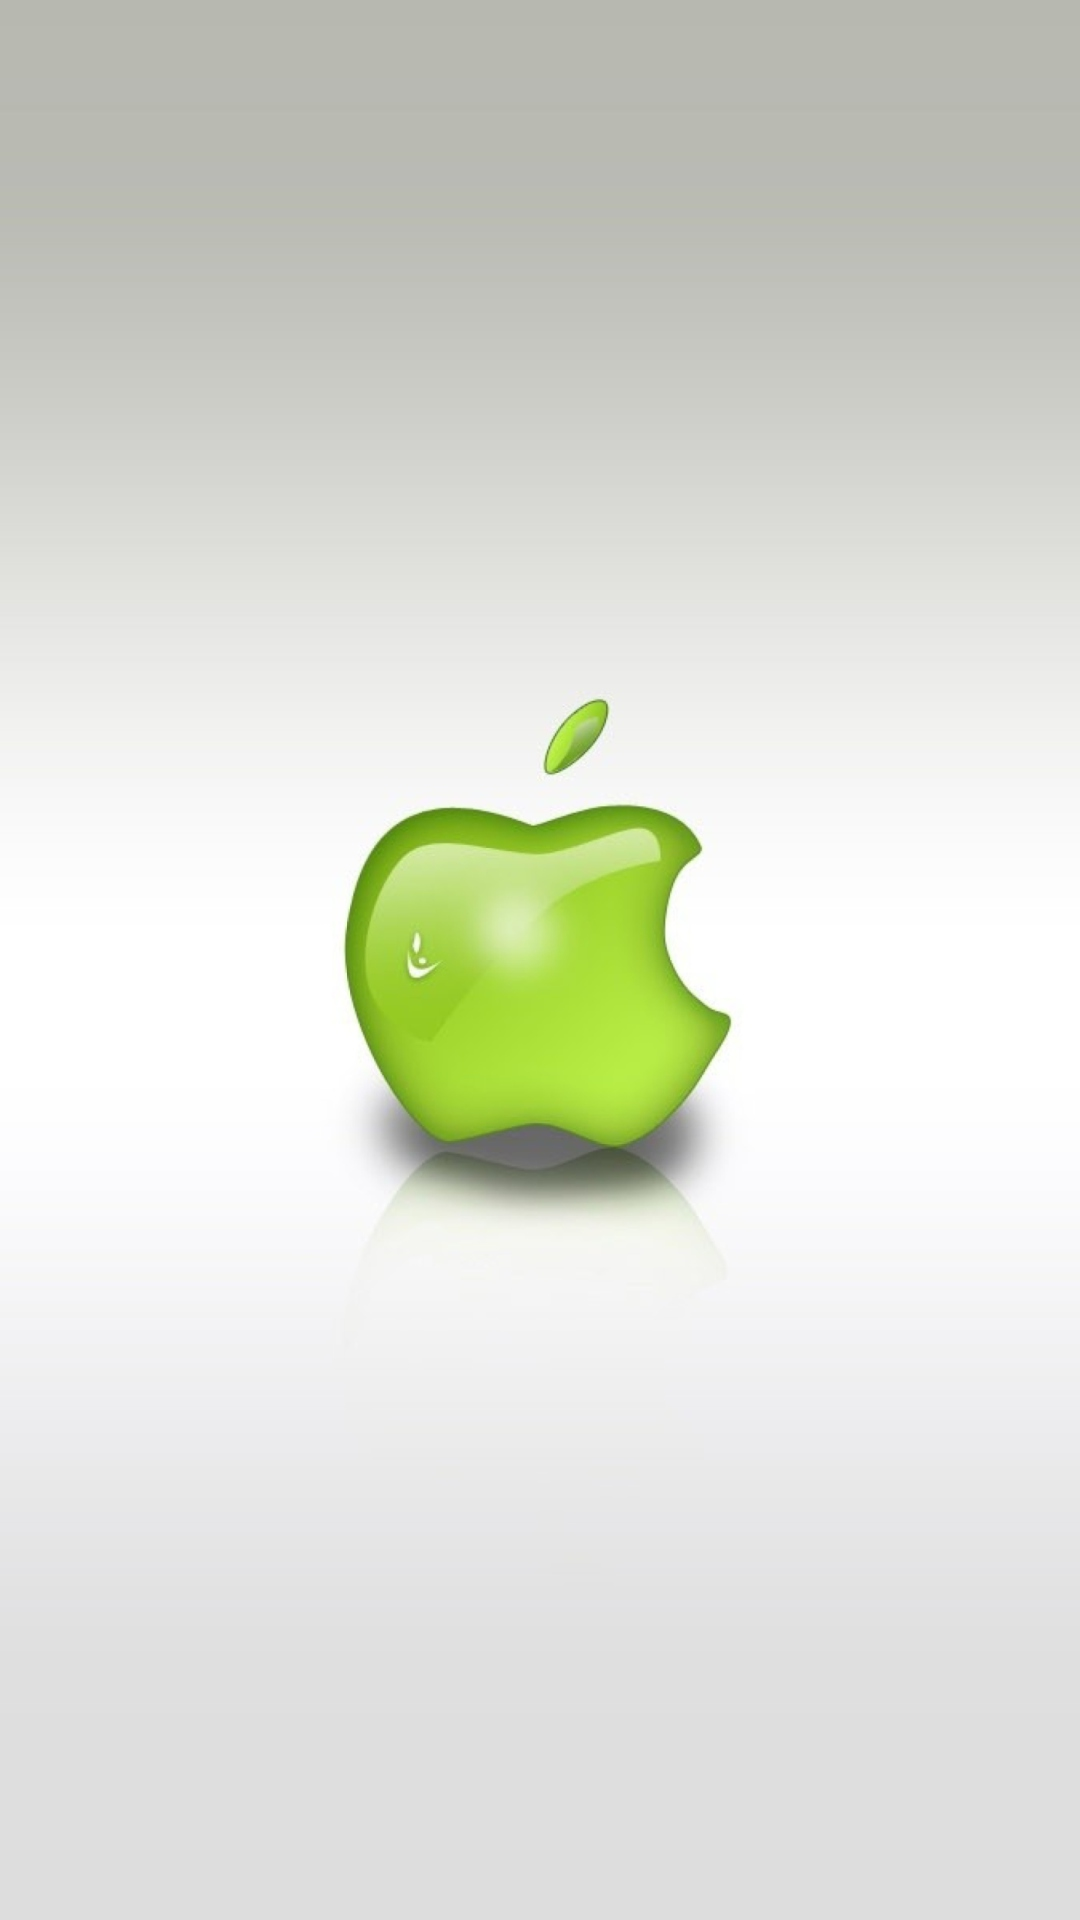 88 887236 download free green apple logo wallpaper for iphone